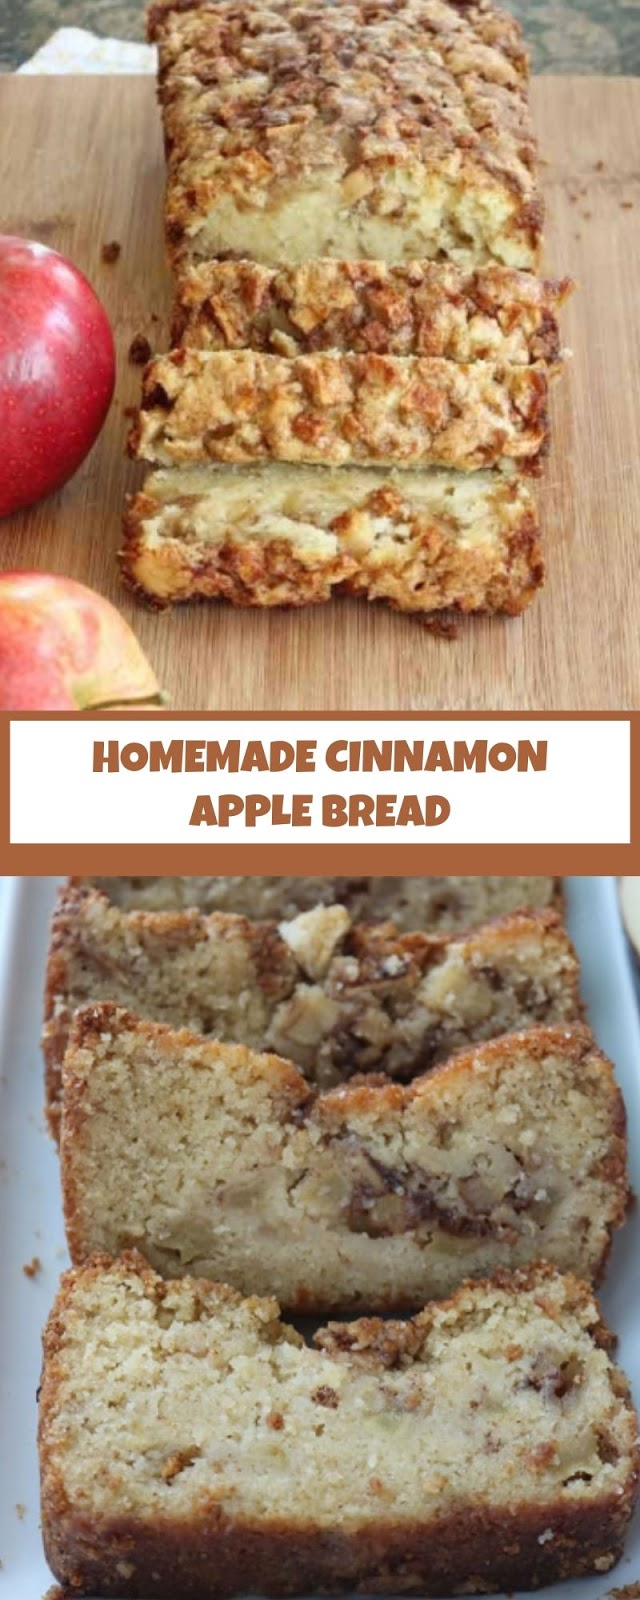 HOMEMADE CINNAMON APPLE BREAD